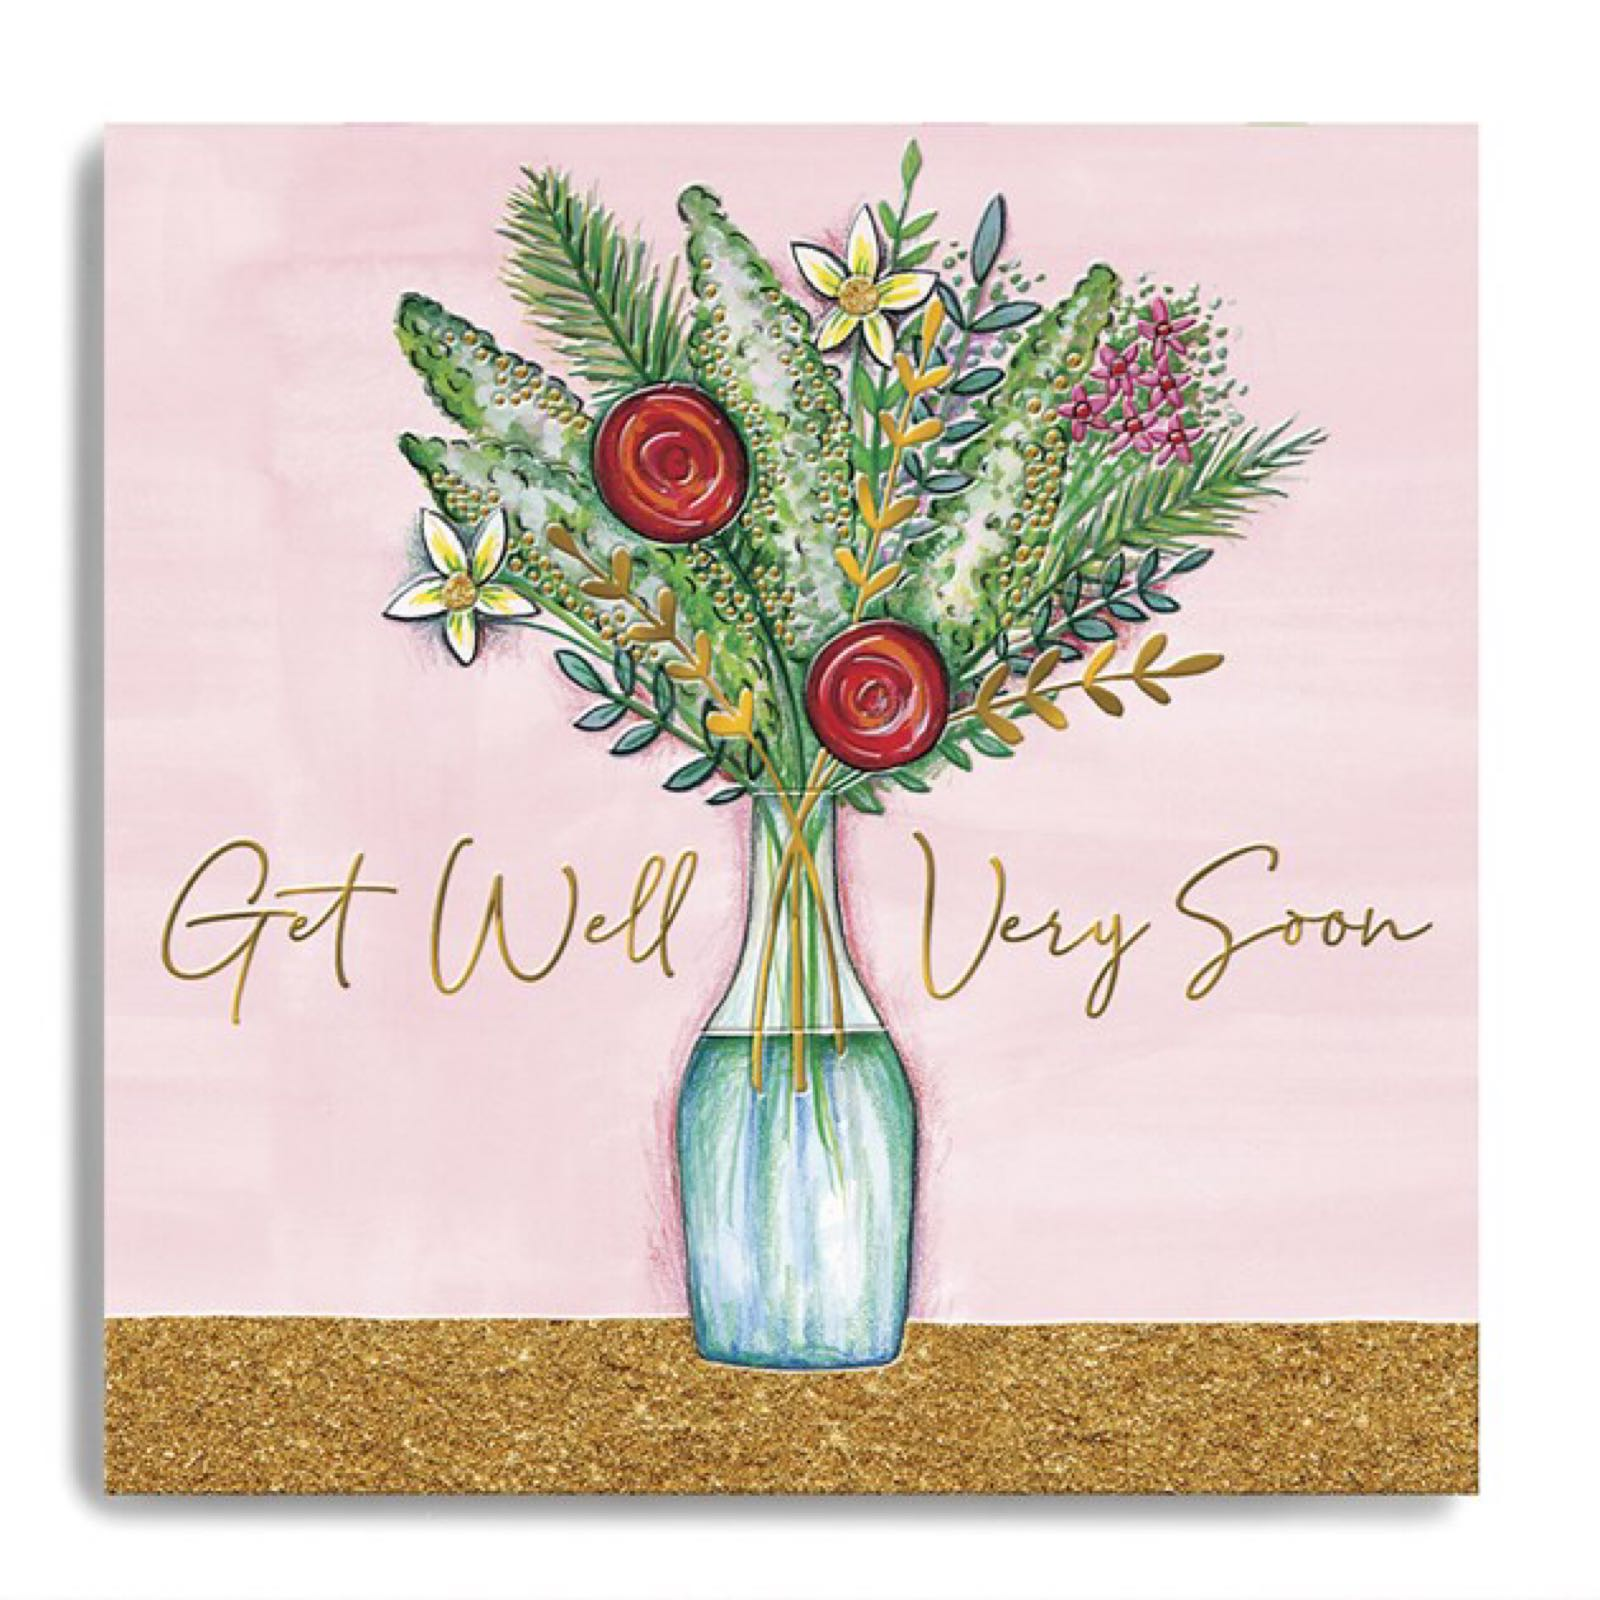 Janie Wilson get well soon bunch of flowers card